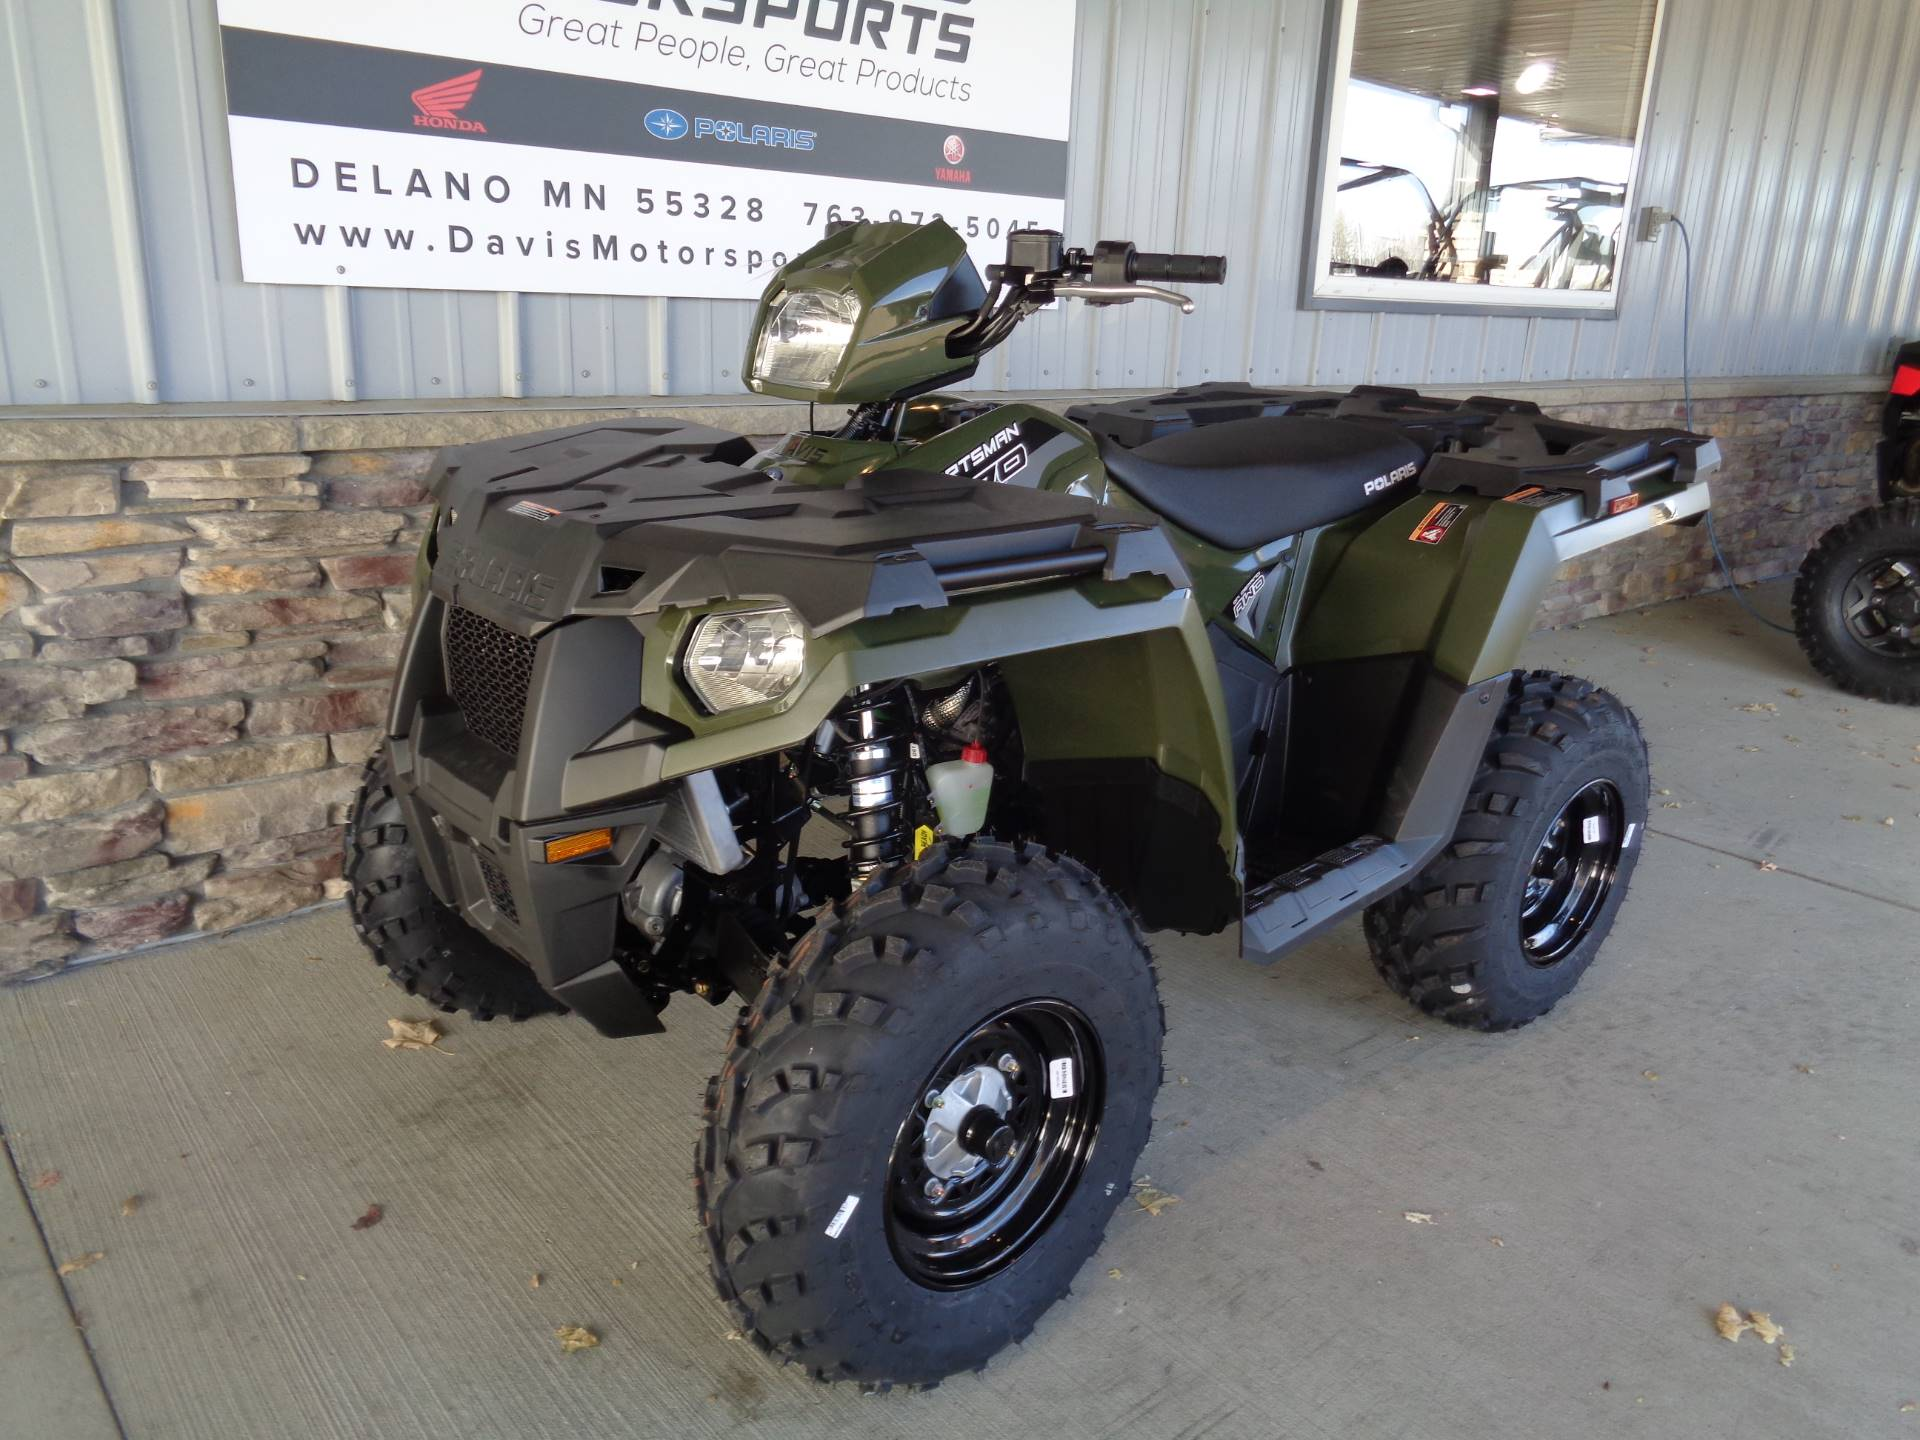 2019 Polaris Sportsman 570 in Delano, Minnesota - Photo 4